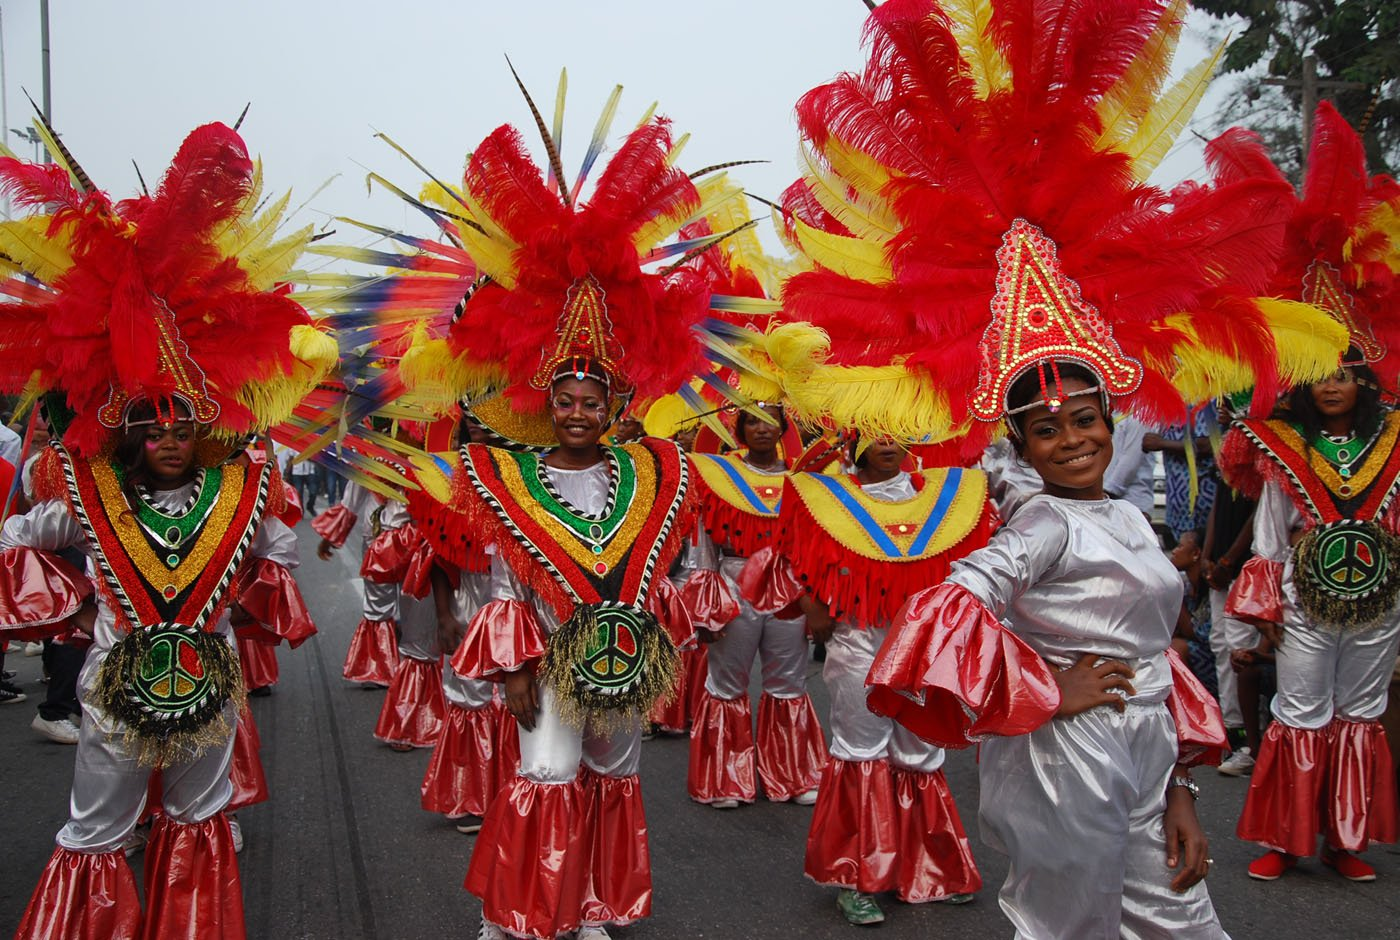 Members of Seagull Band during the Main Event of the 2017 Carnival Calabar in Cross River State Yesterday. Photo: Nwankpa Chijioke